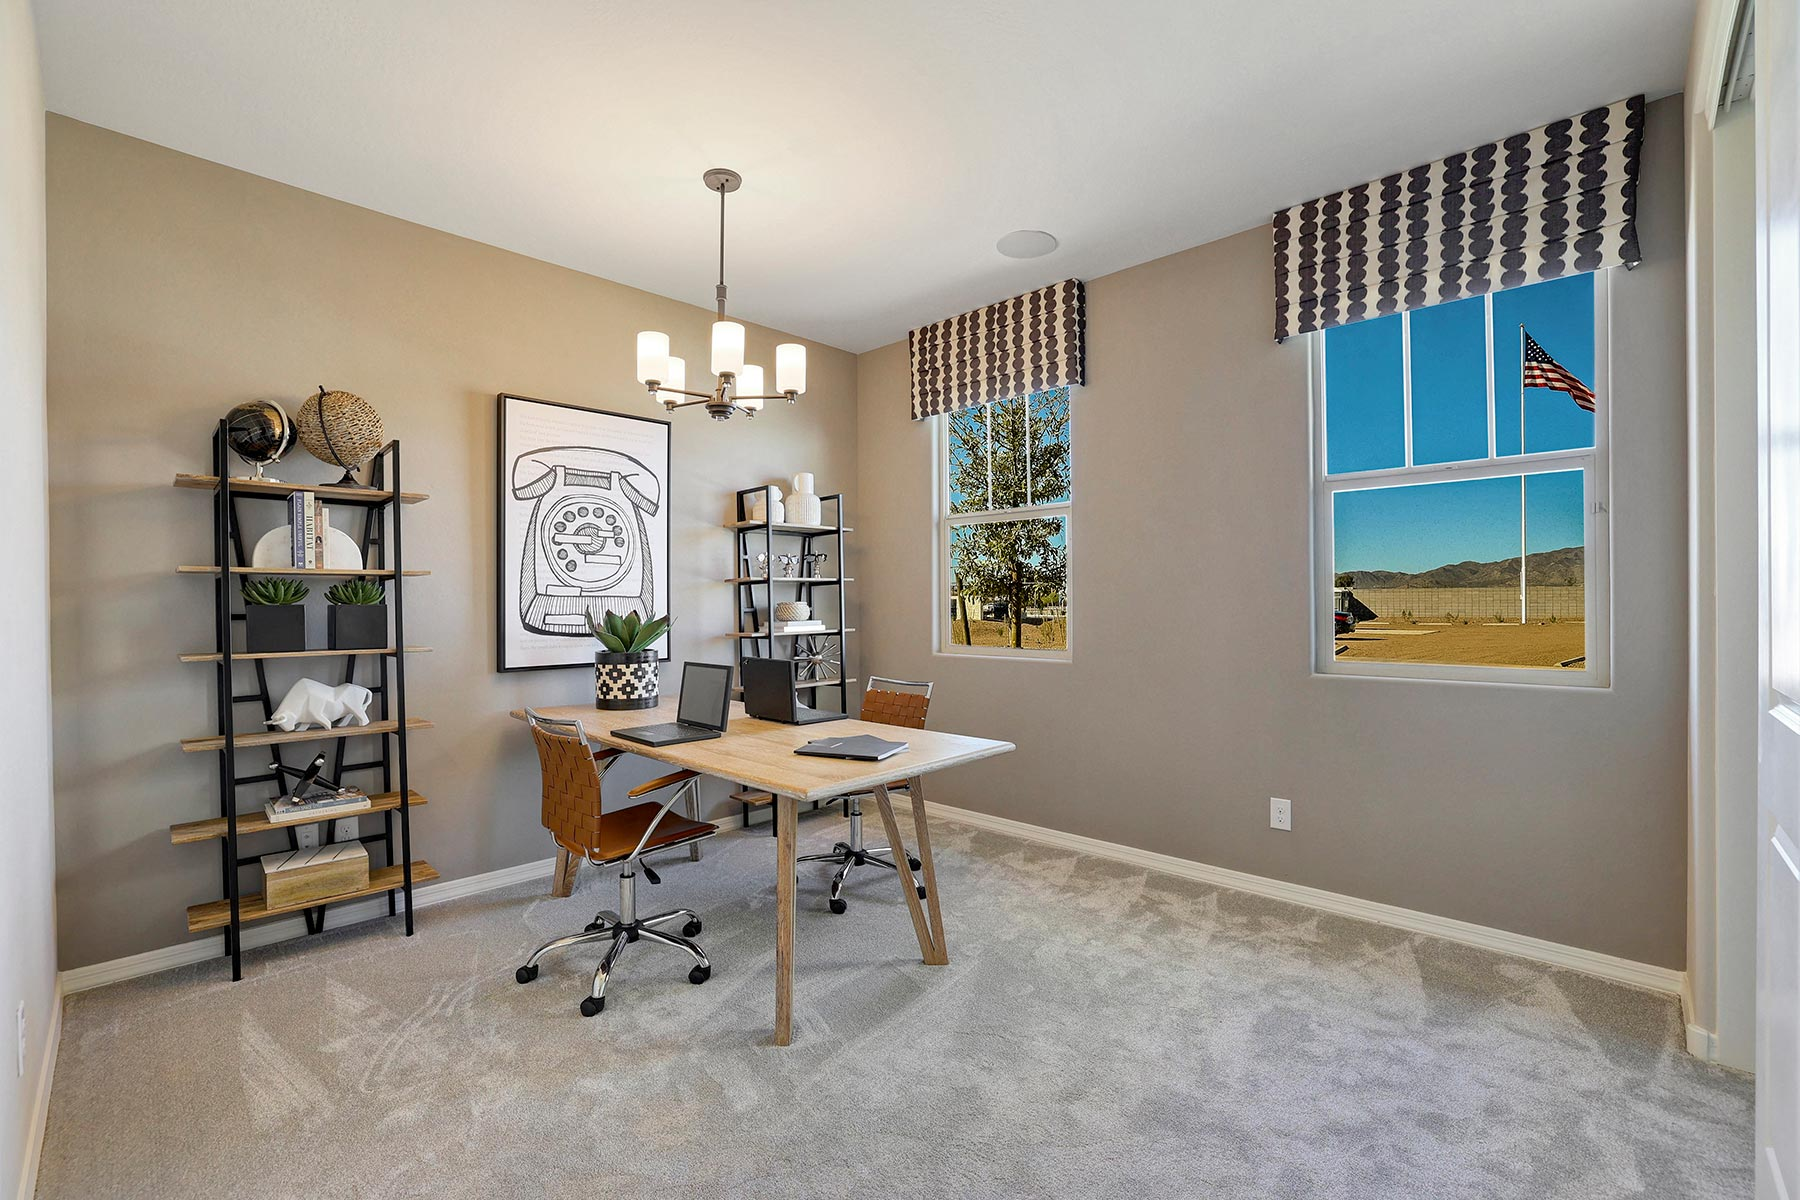 Bellwood Plan Study Room at Azure Canyon in Goodyear Arizona by Mattamy Homes